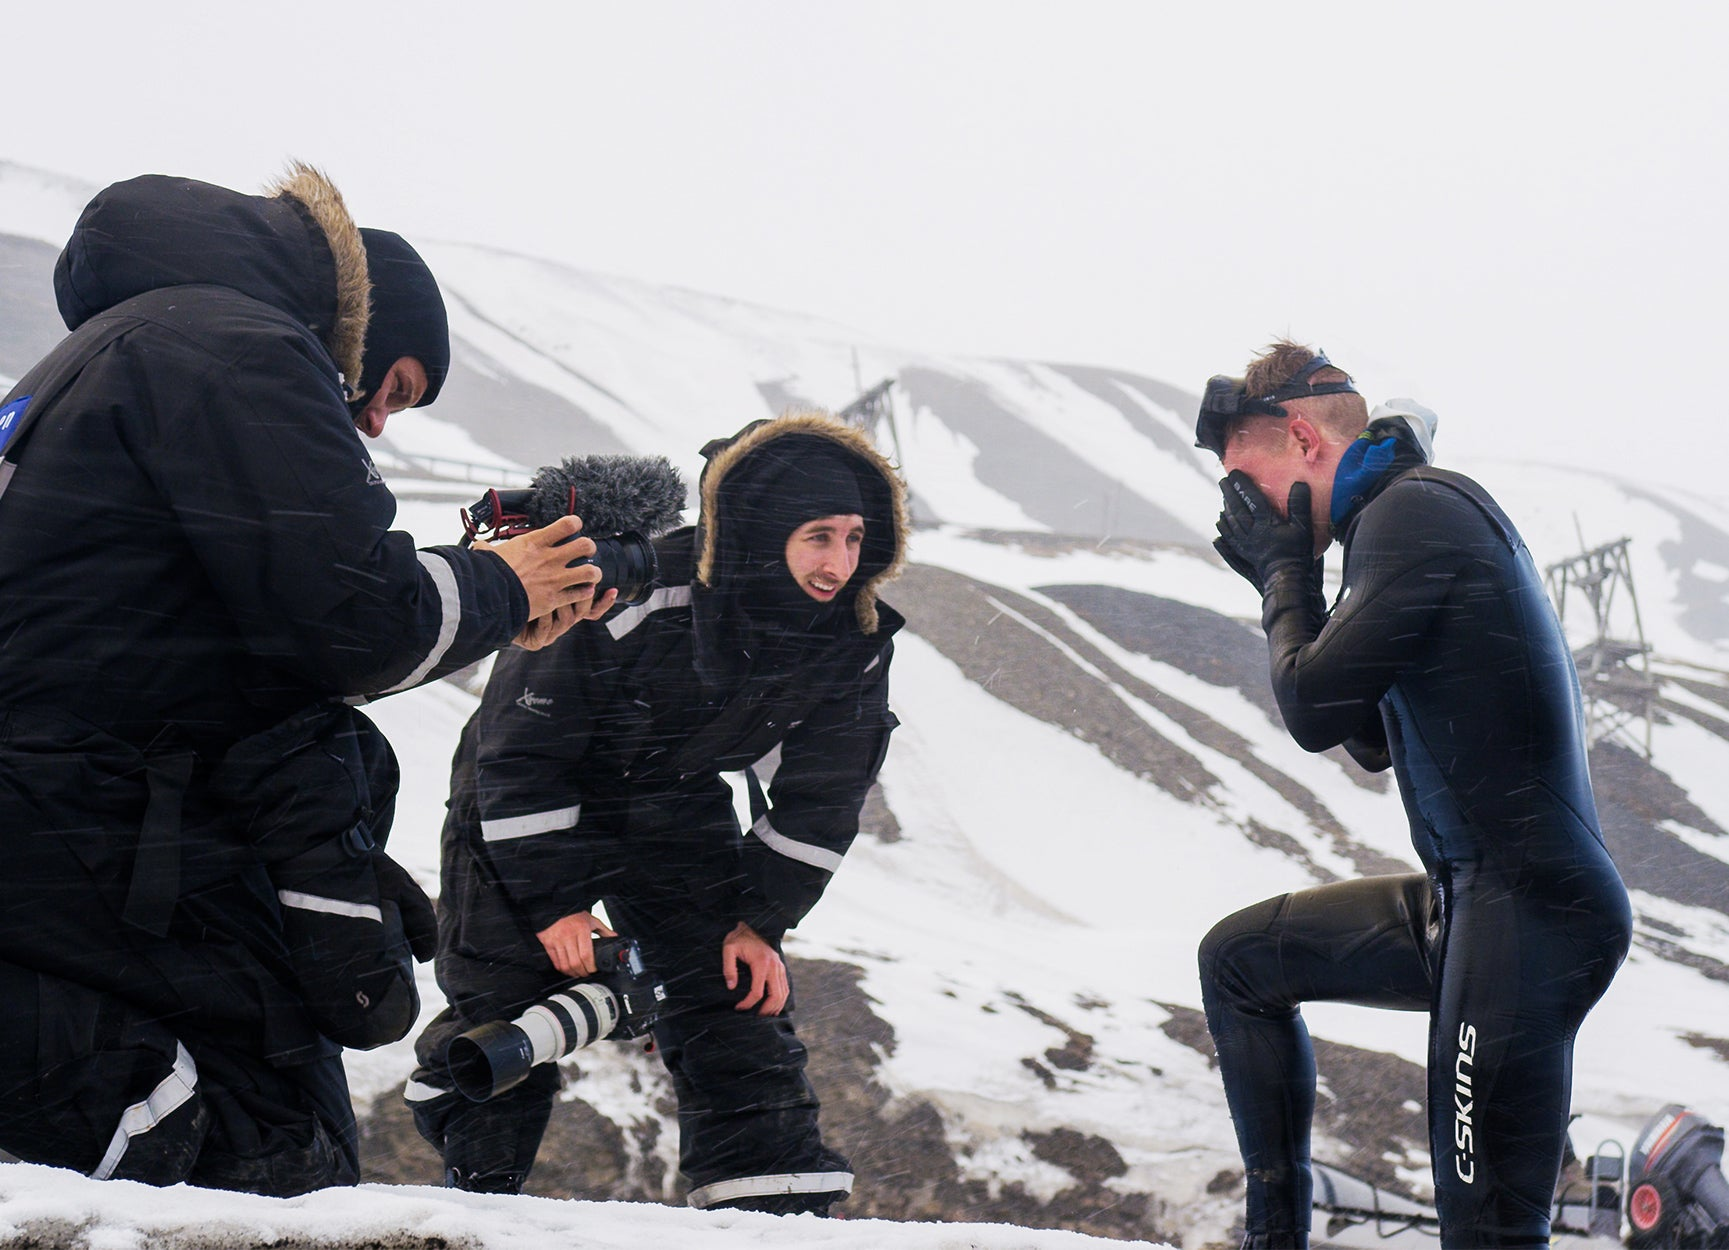 Three men in a snowy mountain doing a video shoot